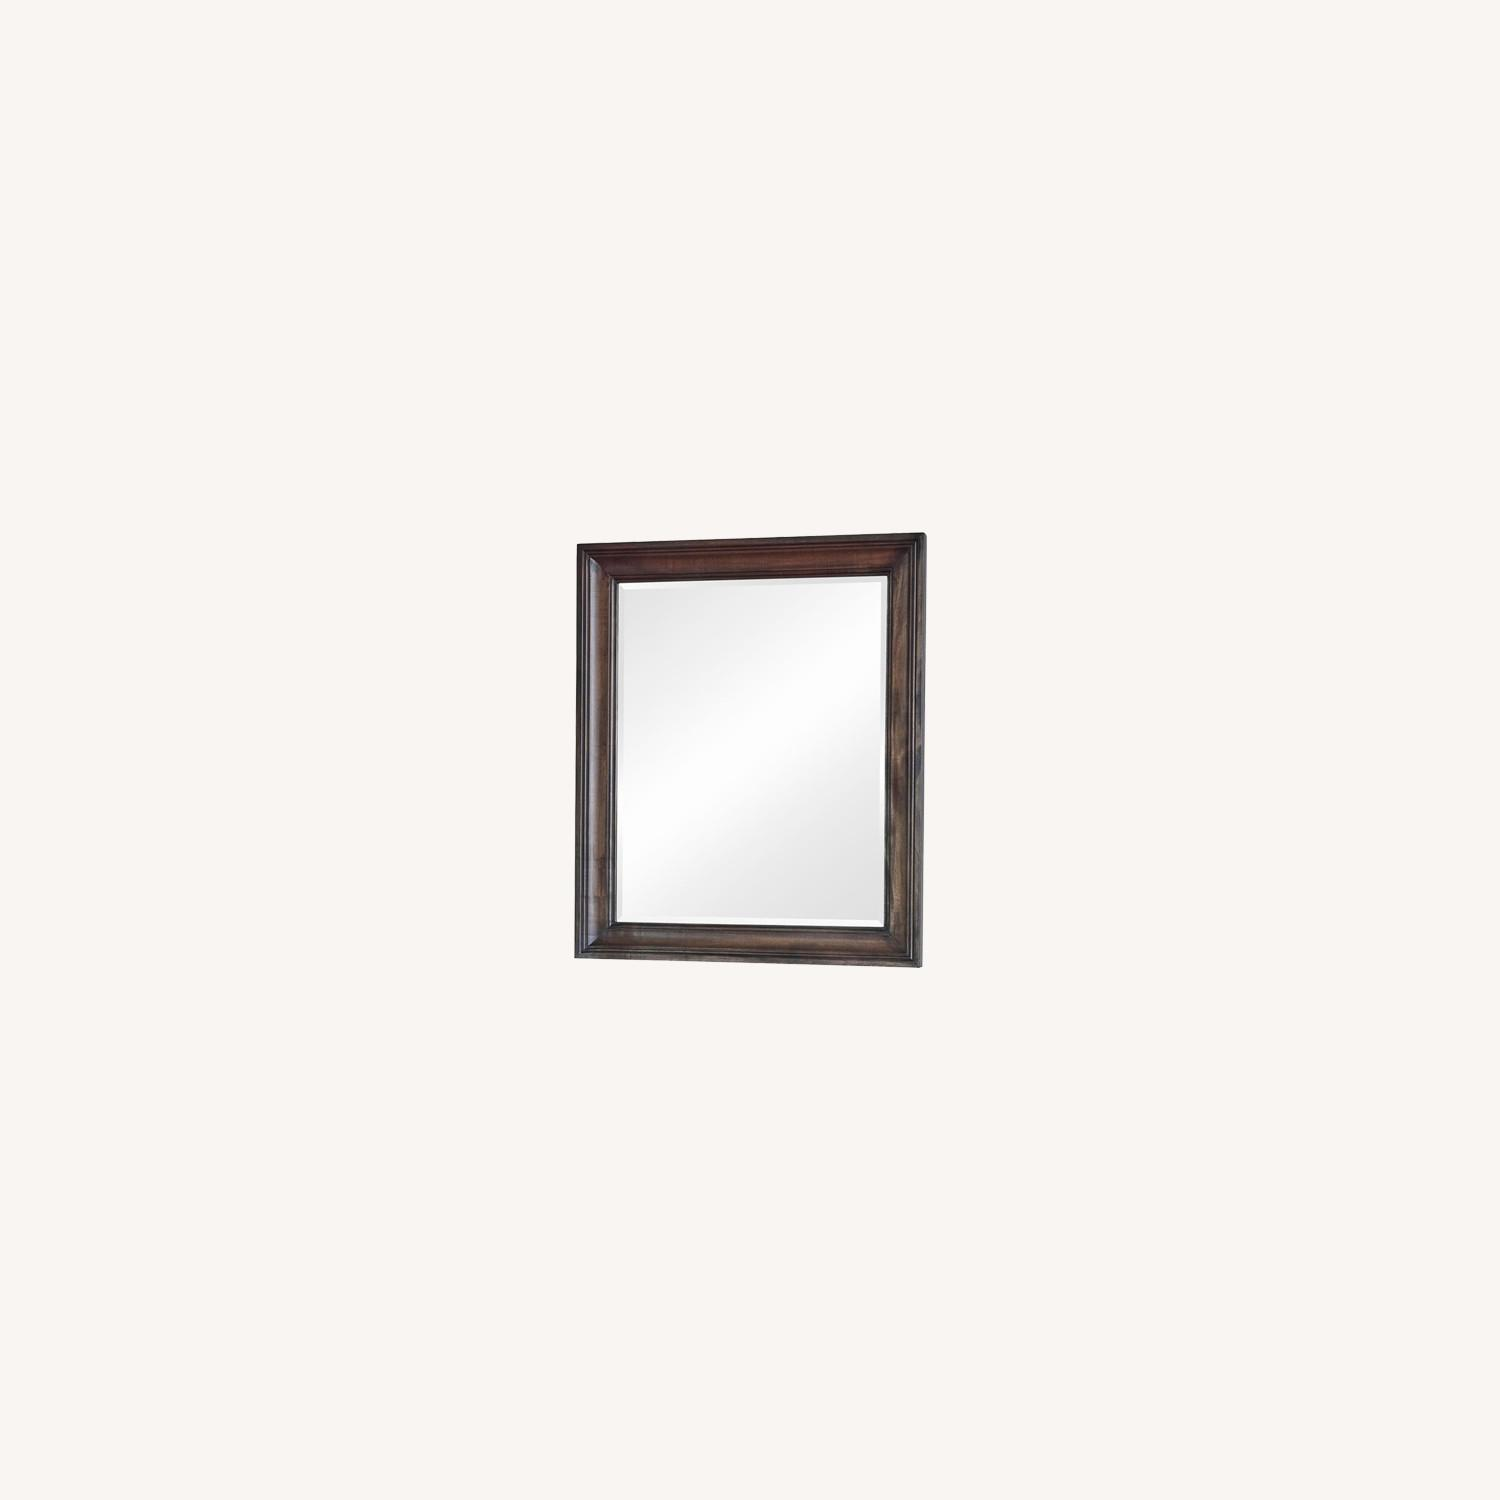 Vanity Mirror In Weathered Burnished Brown Finish - image-3